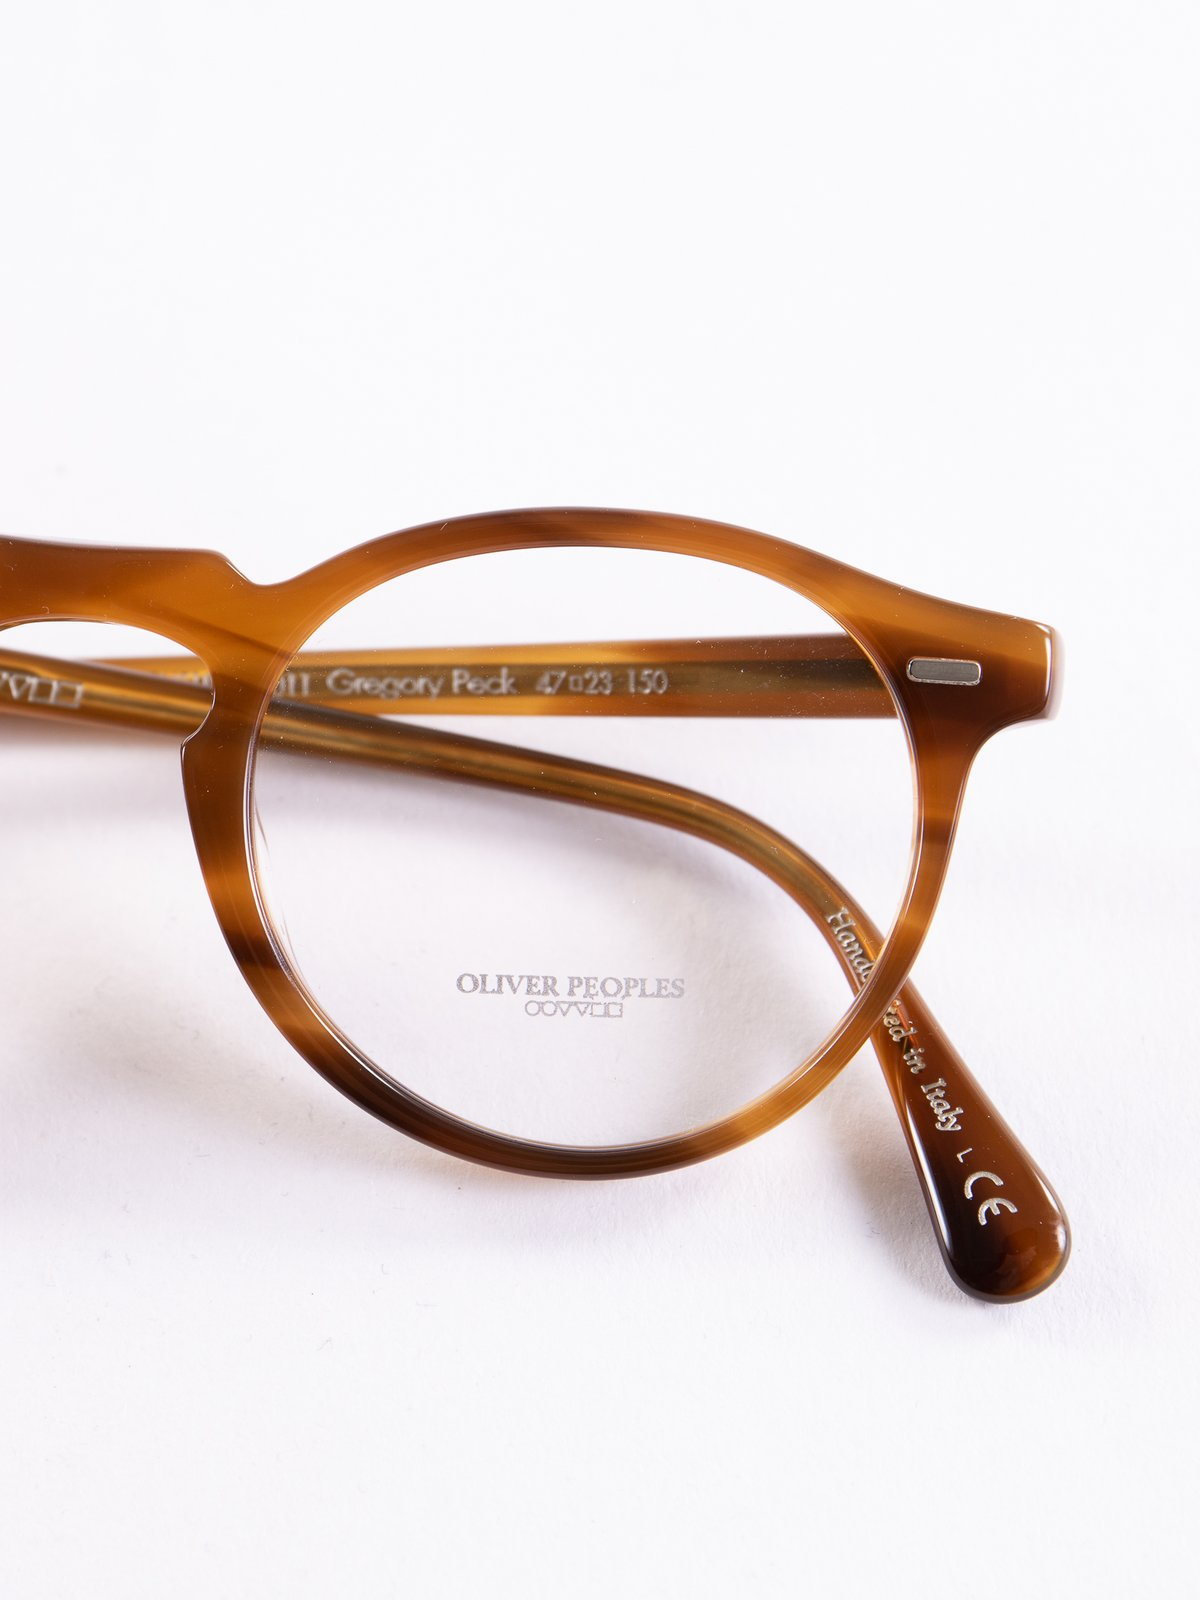 Raintree Gregory Peck Optical Frame - Image 2